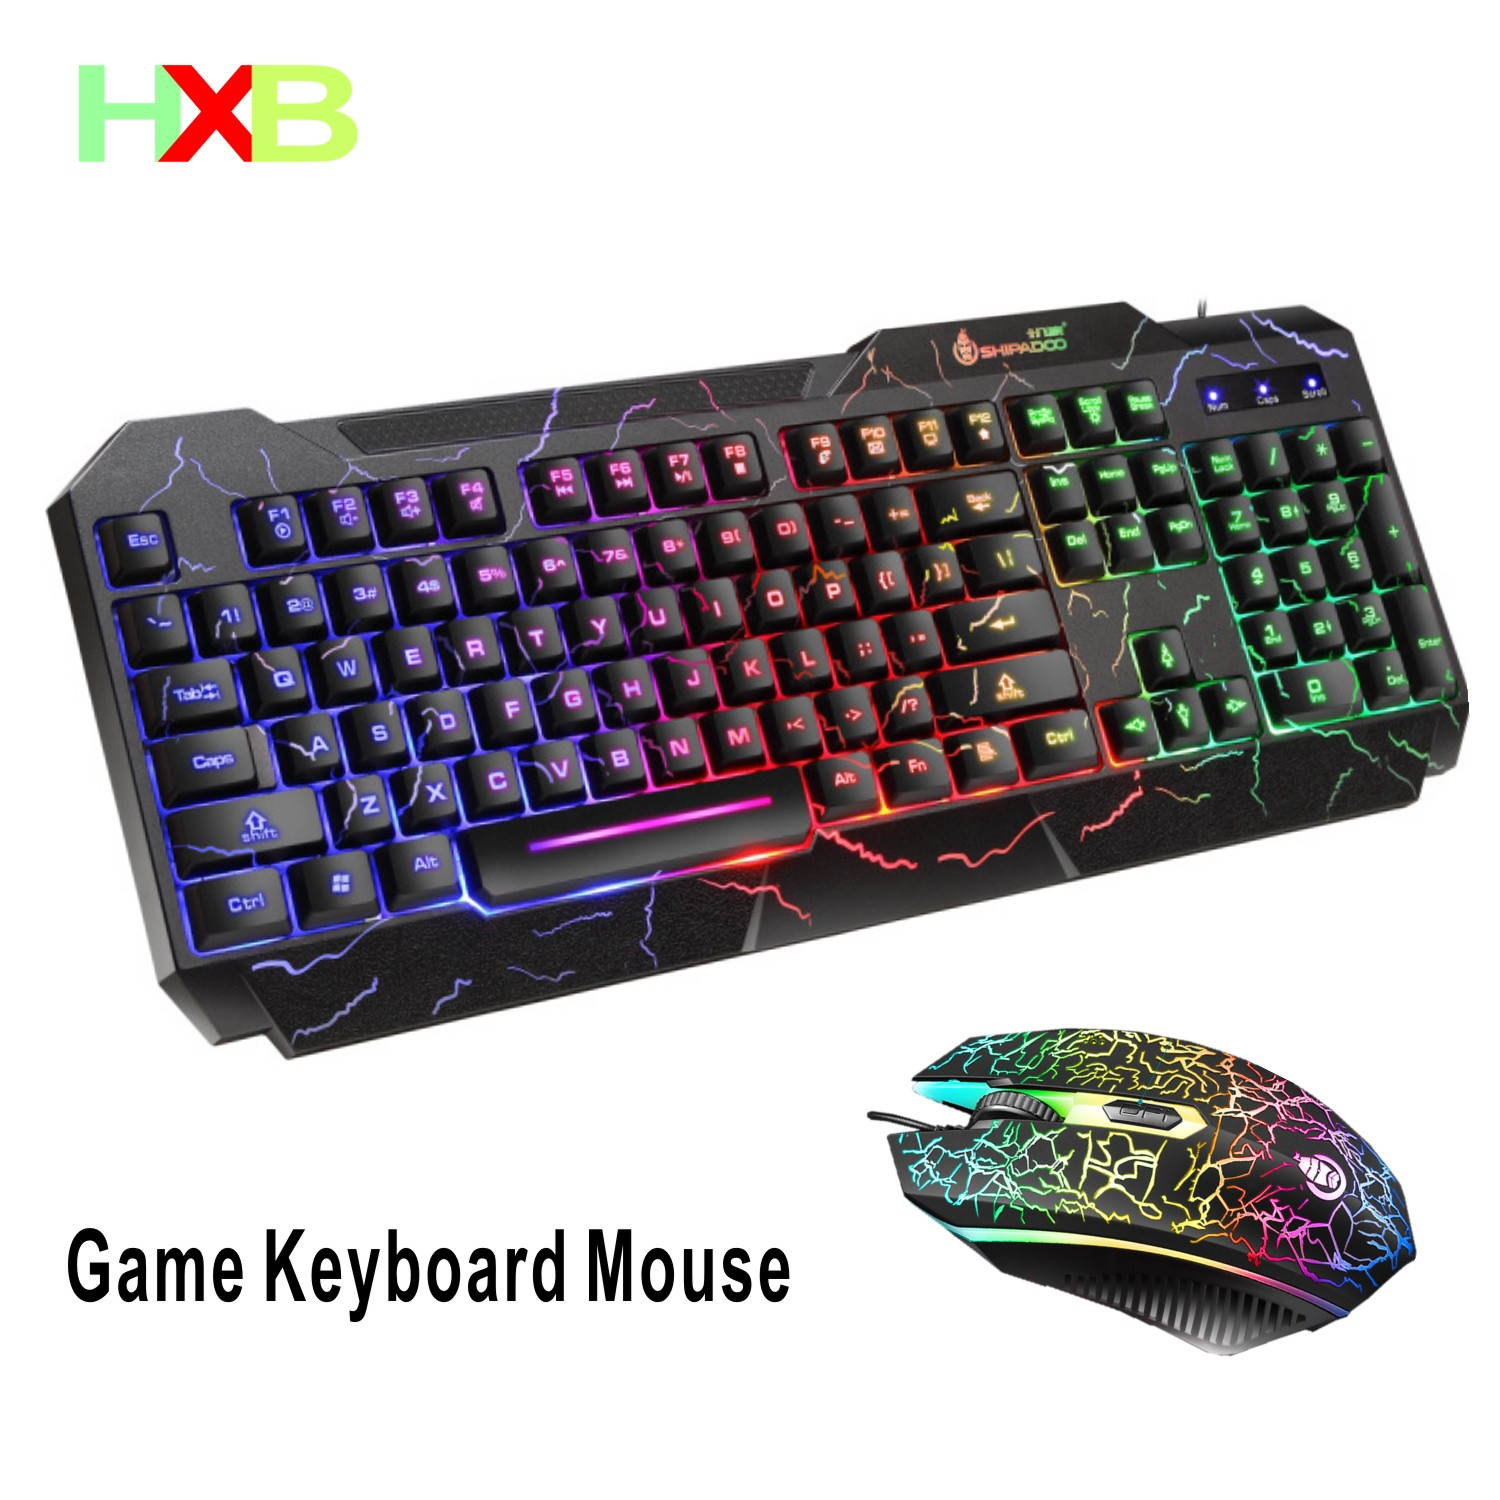 Mouse Keyboard Luminous Backlight Keyboard Mouse Set Usb Wired Mouse And Keyboard Anti-splash Gaming Keyboard And Mouse For Pc